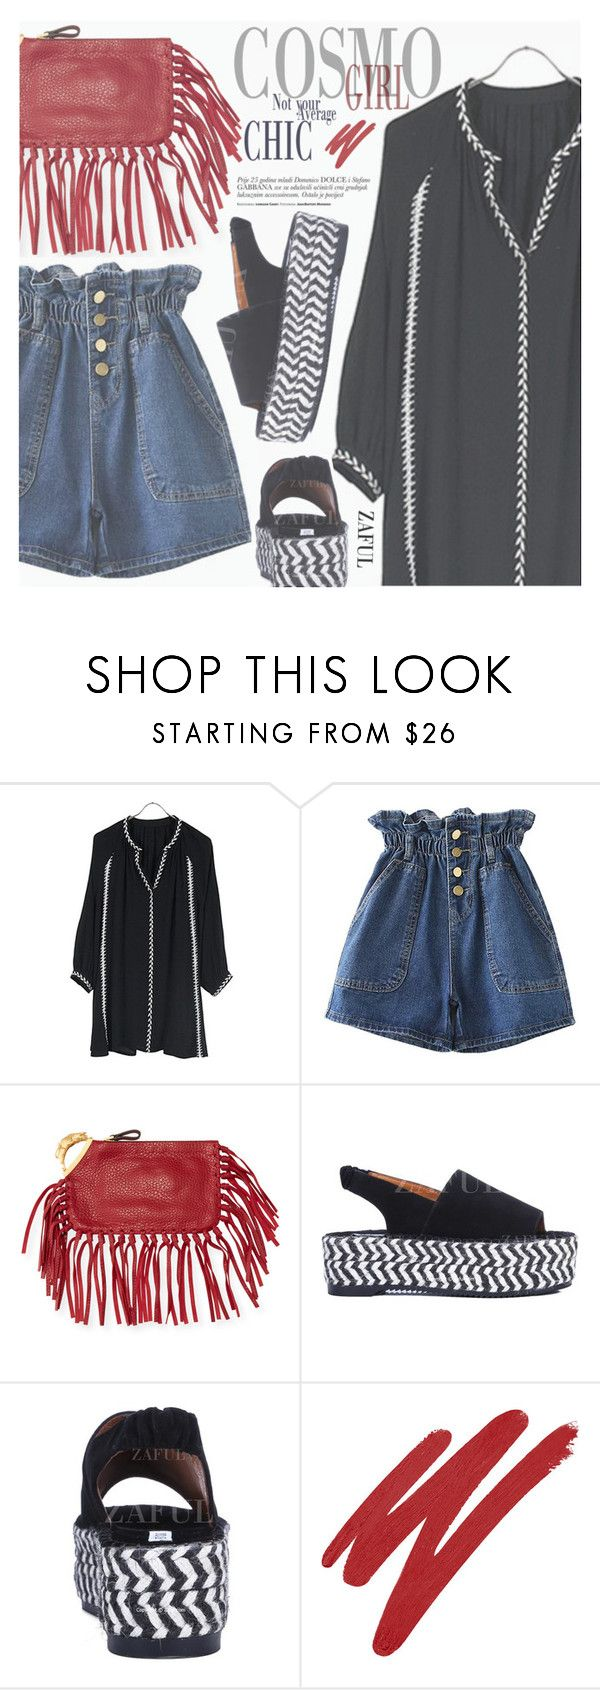 """Boho"" by pokadoll ❤ liked on Polyvore featuring Valentino, NARS Cosmetics, polyvoreeditorial, polyvorefashion and polyvoreset"